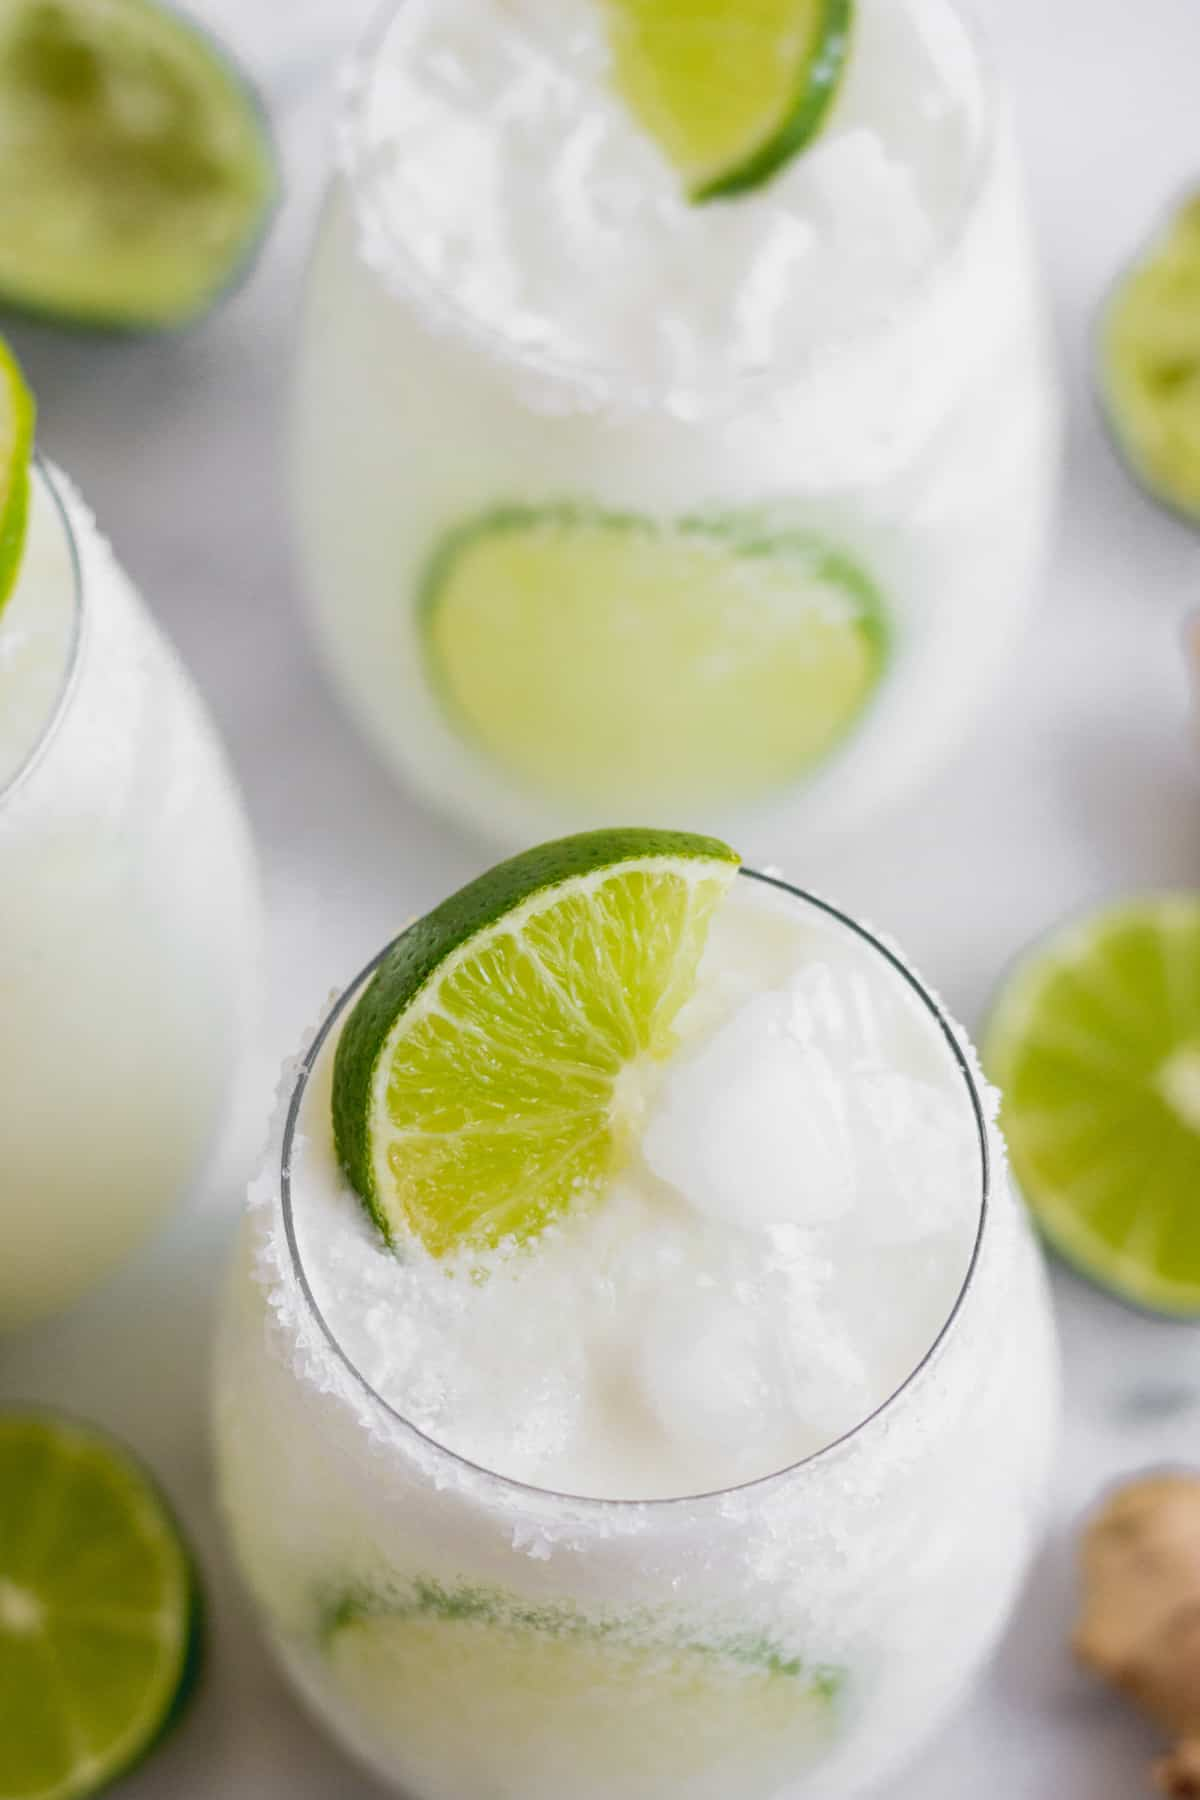 Overhead shot of 2 glasses filled with a coconut mocktail garnished with limes